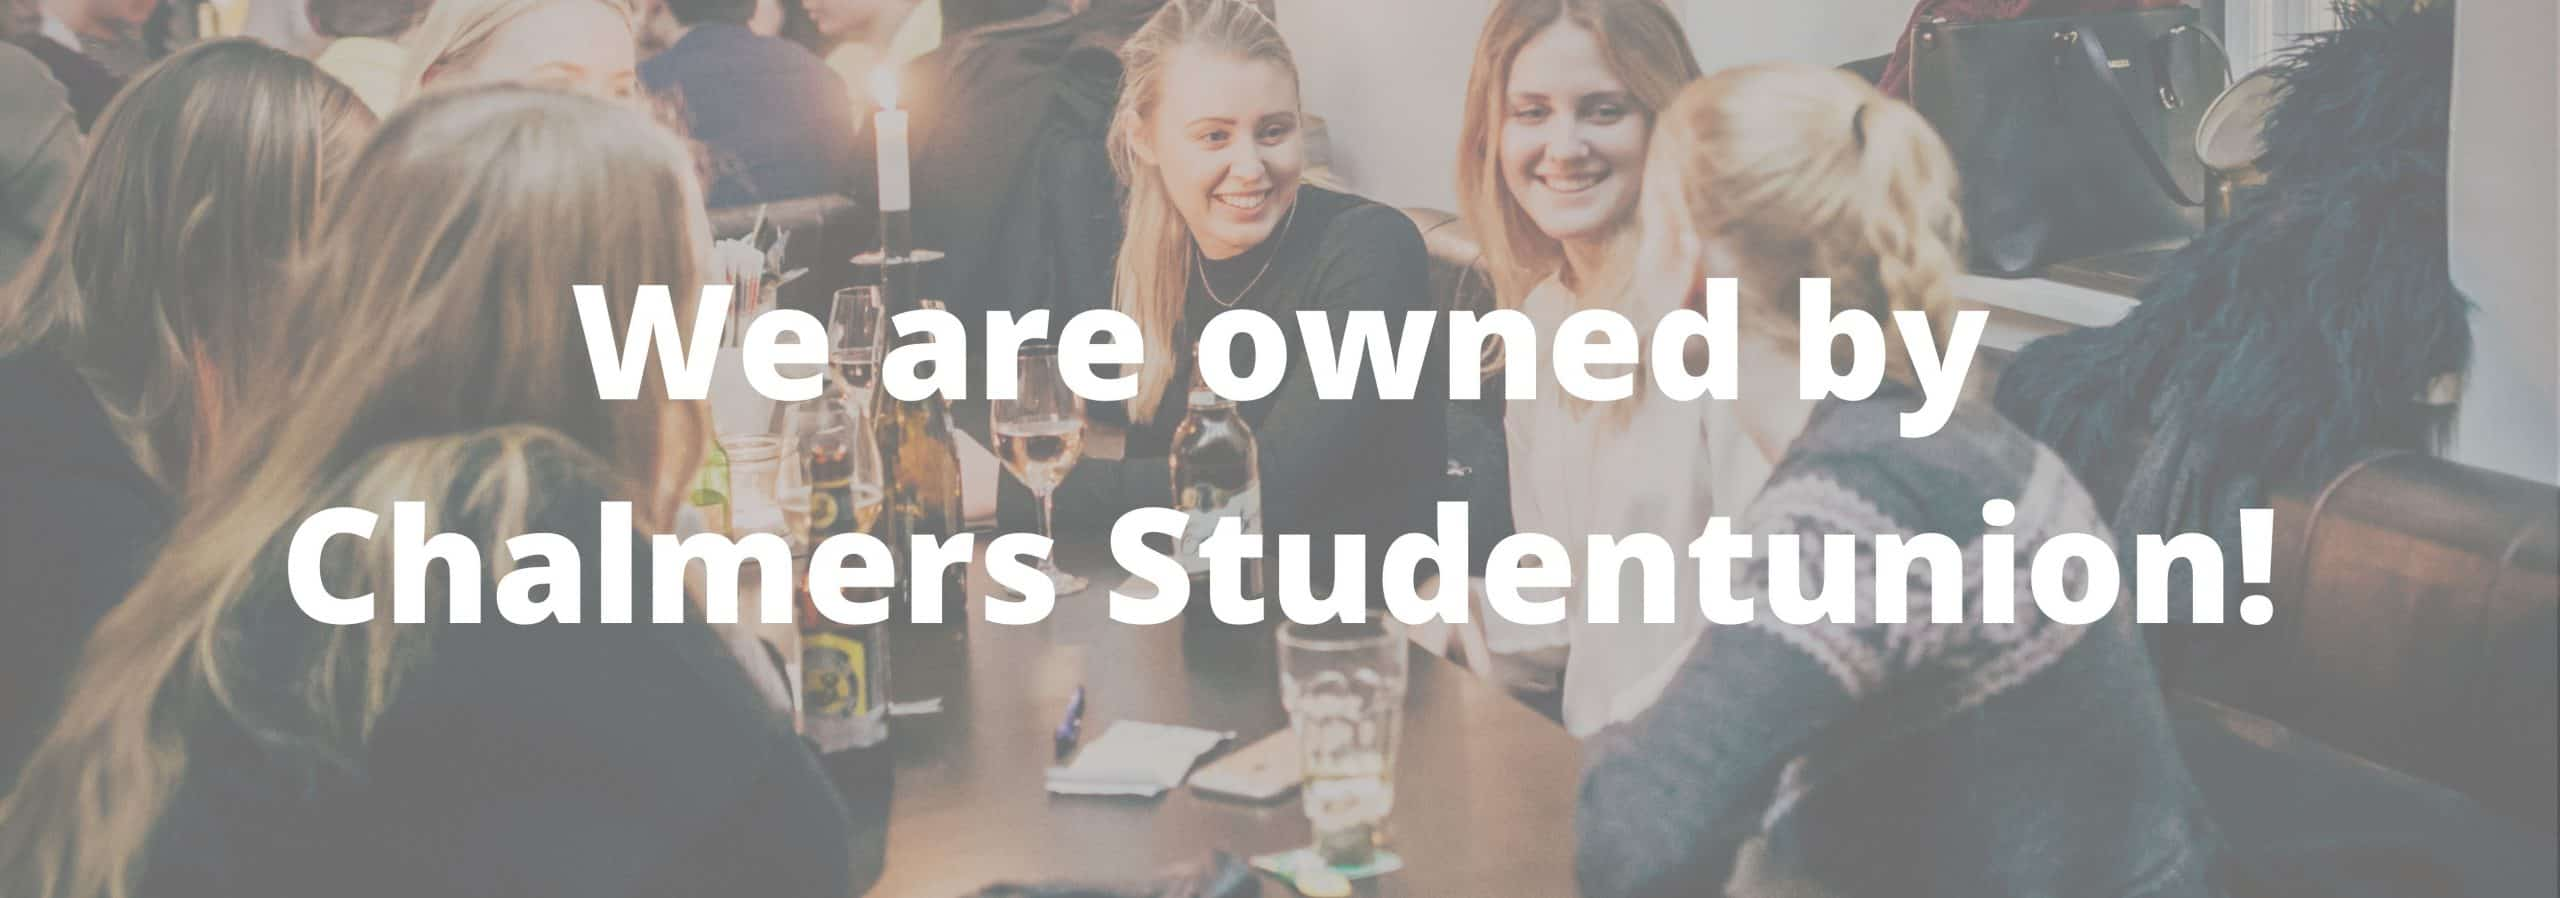 We are owned by Chalmers studentunion